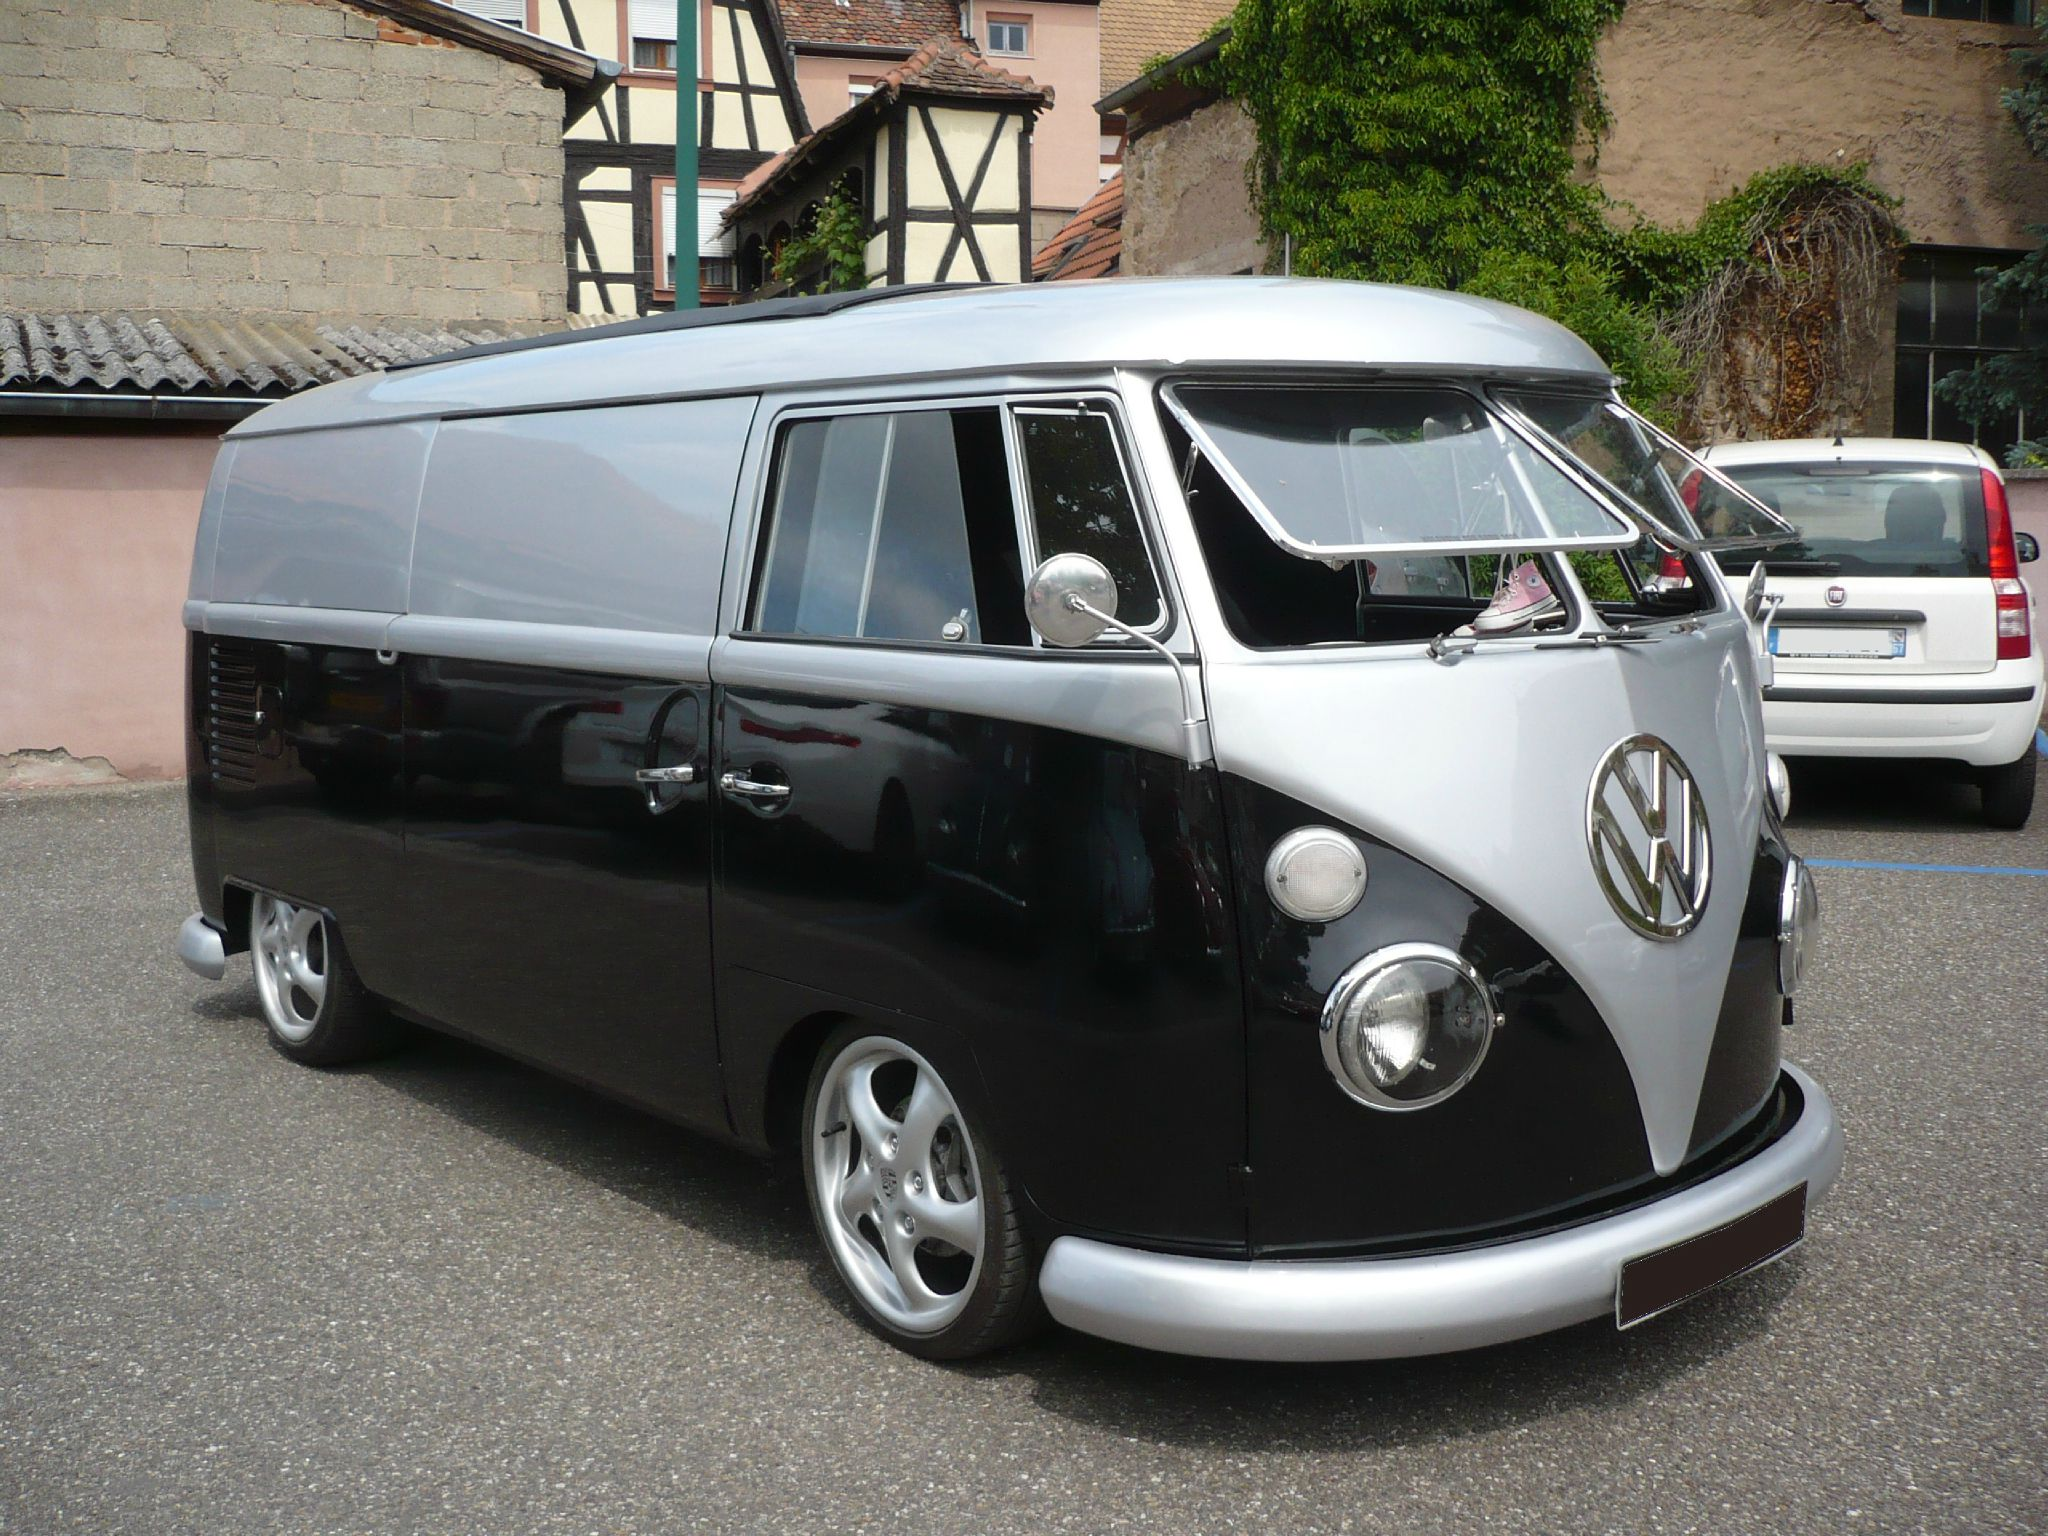 volkswagen combi split fourgon t l molsheim 1 photo de 066 7e molsheim cox show le 20 mai. Black Bedroom Furniture Sets. Home Design Ideas